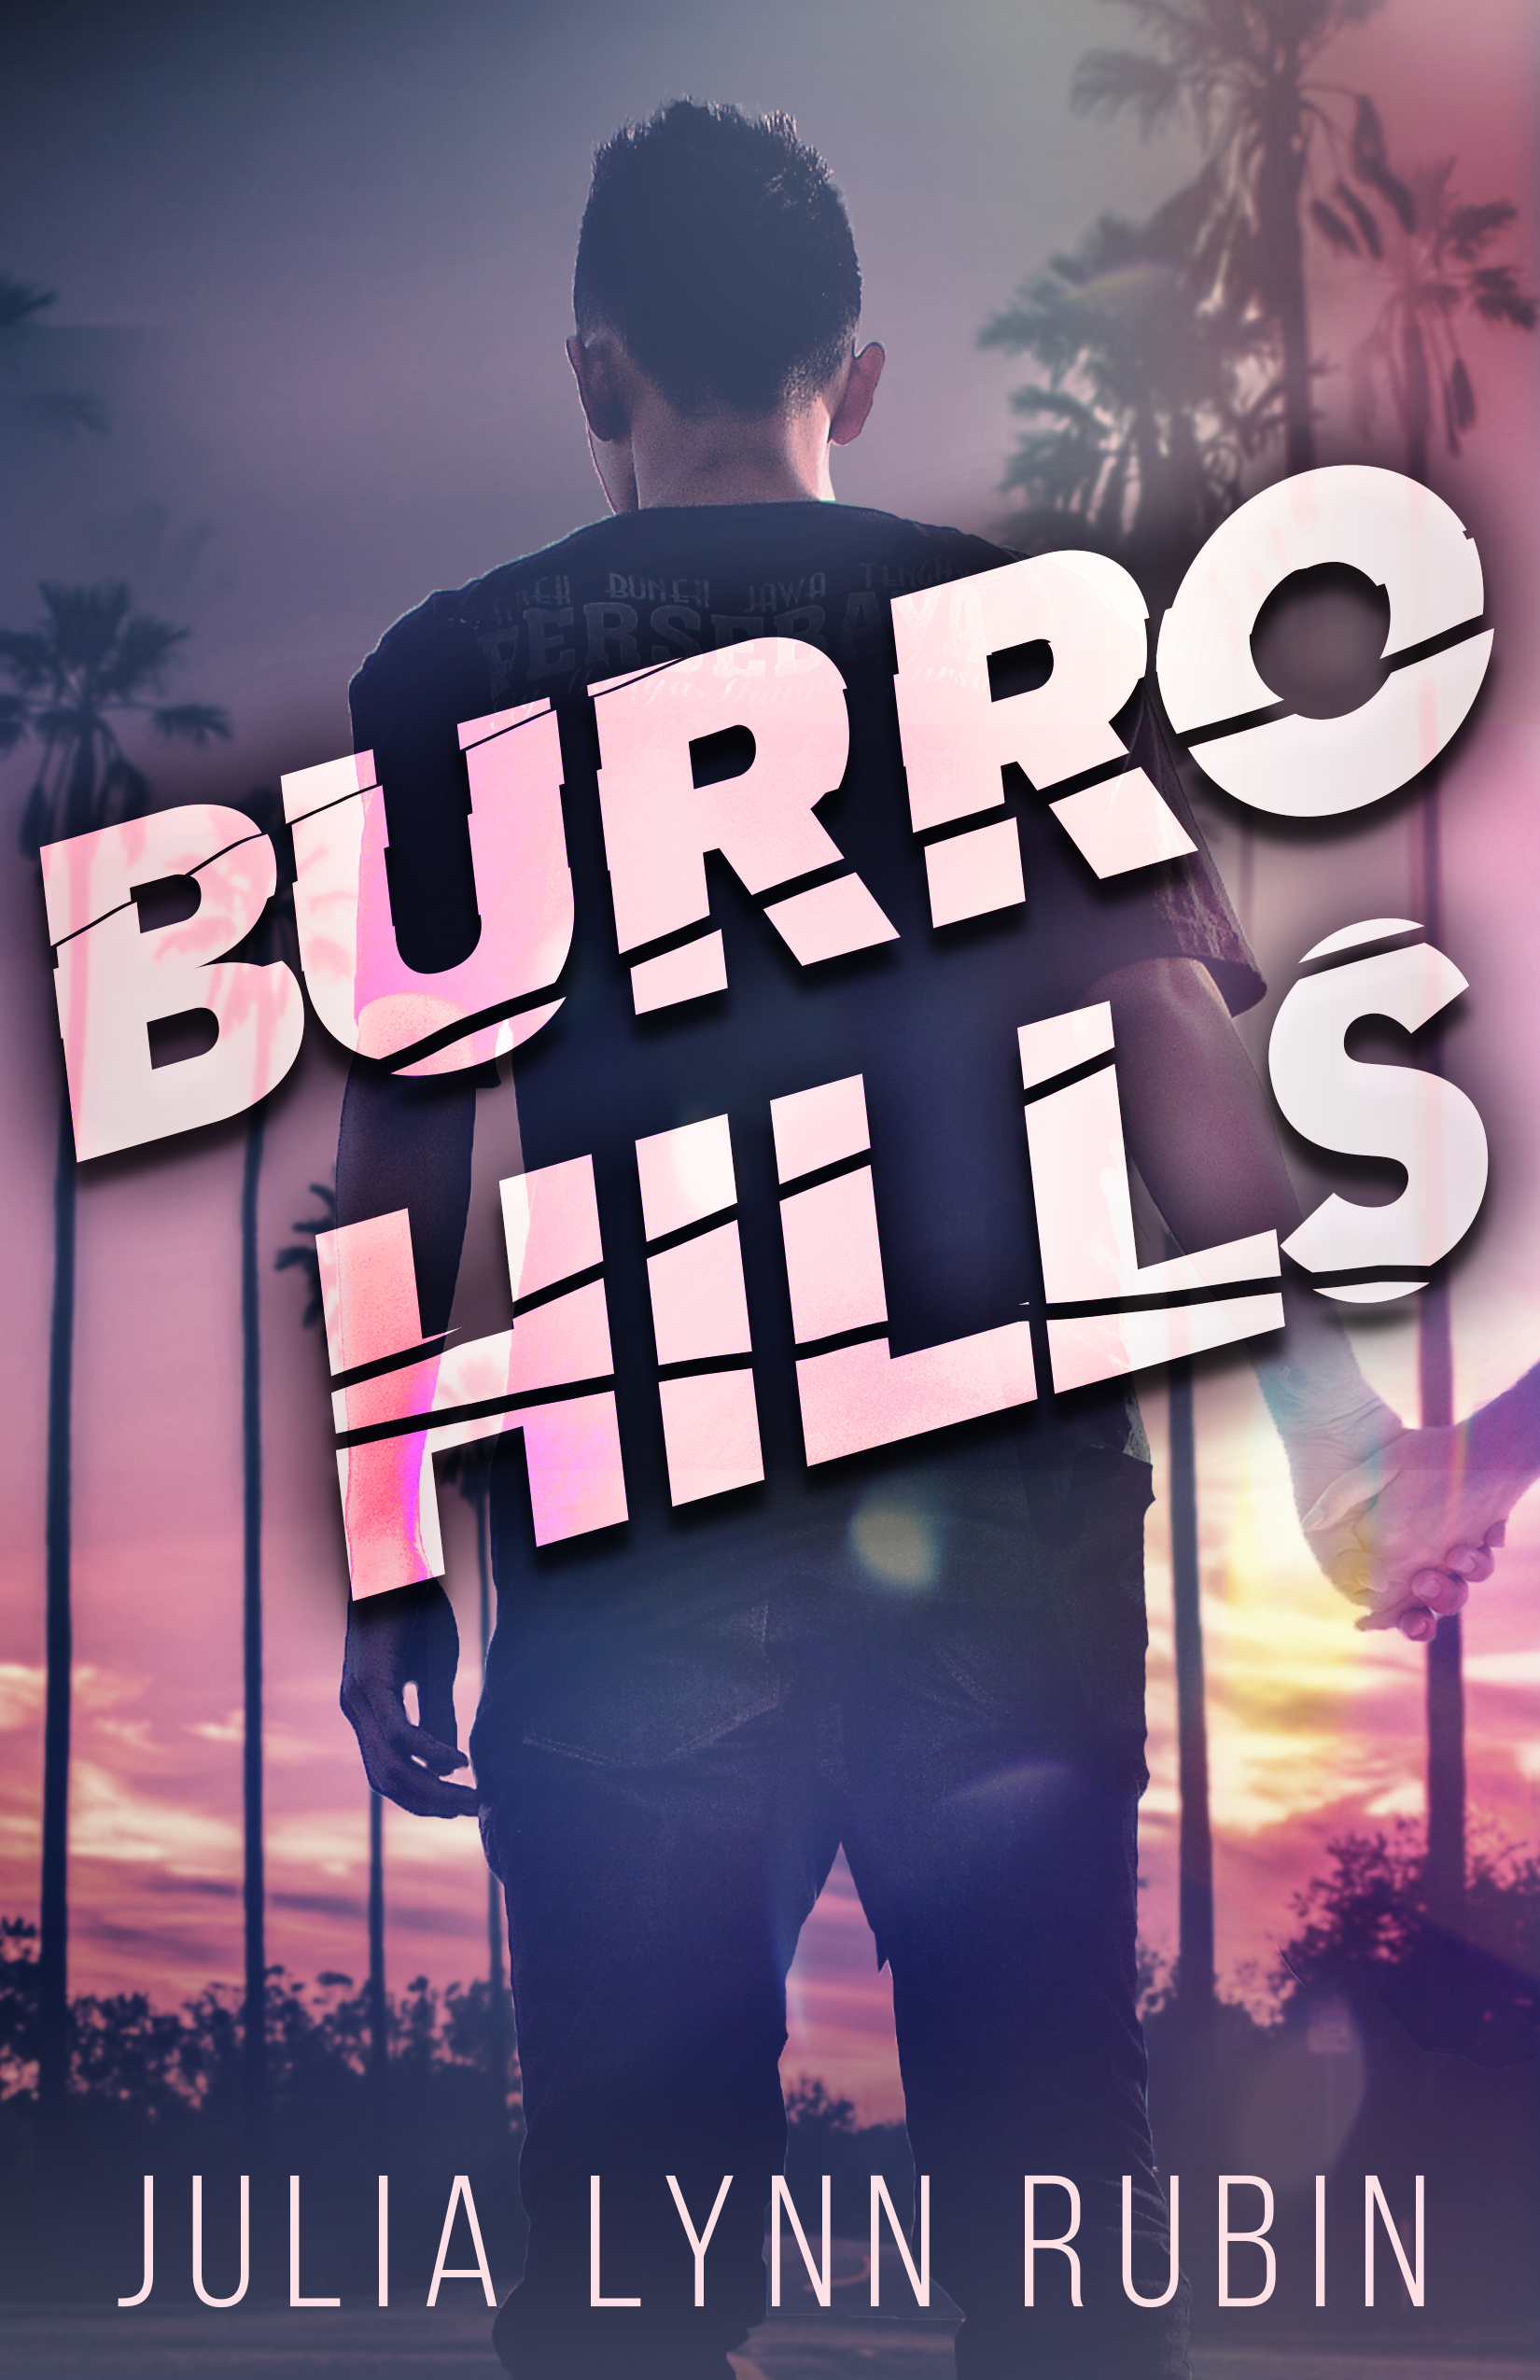 Book Launch: Burro Hills by Julia Lynn Rubin